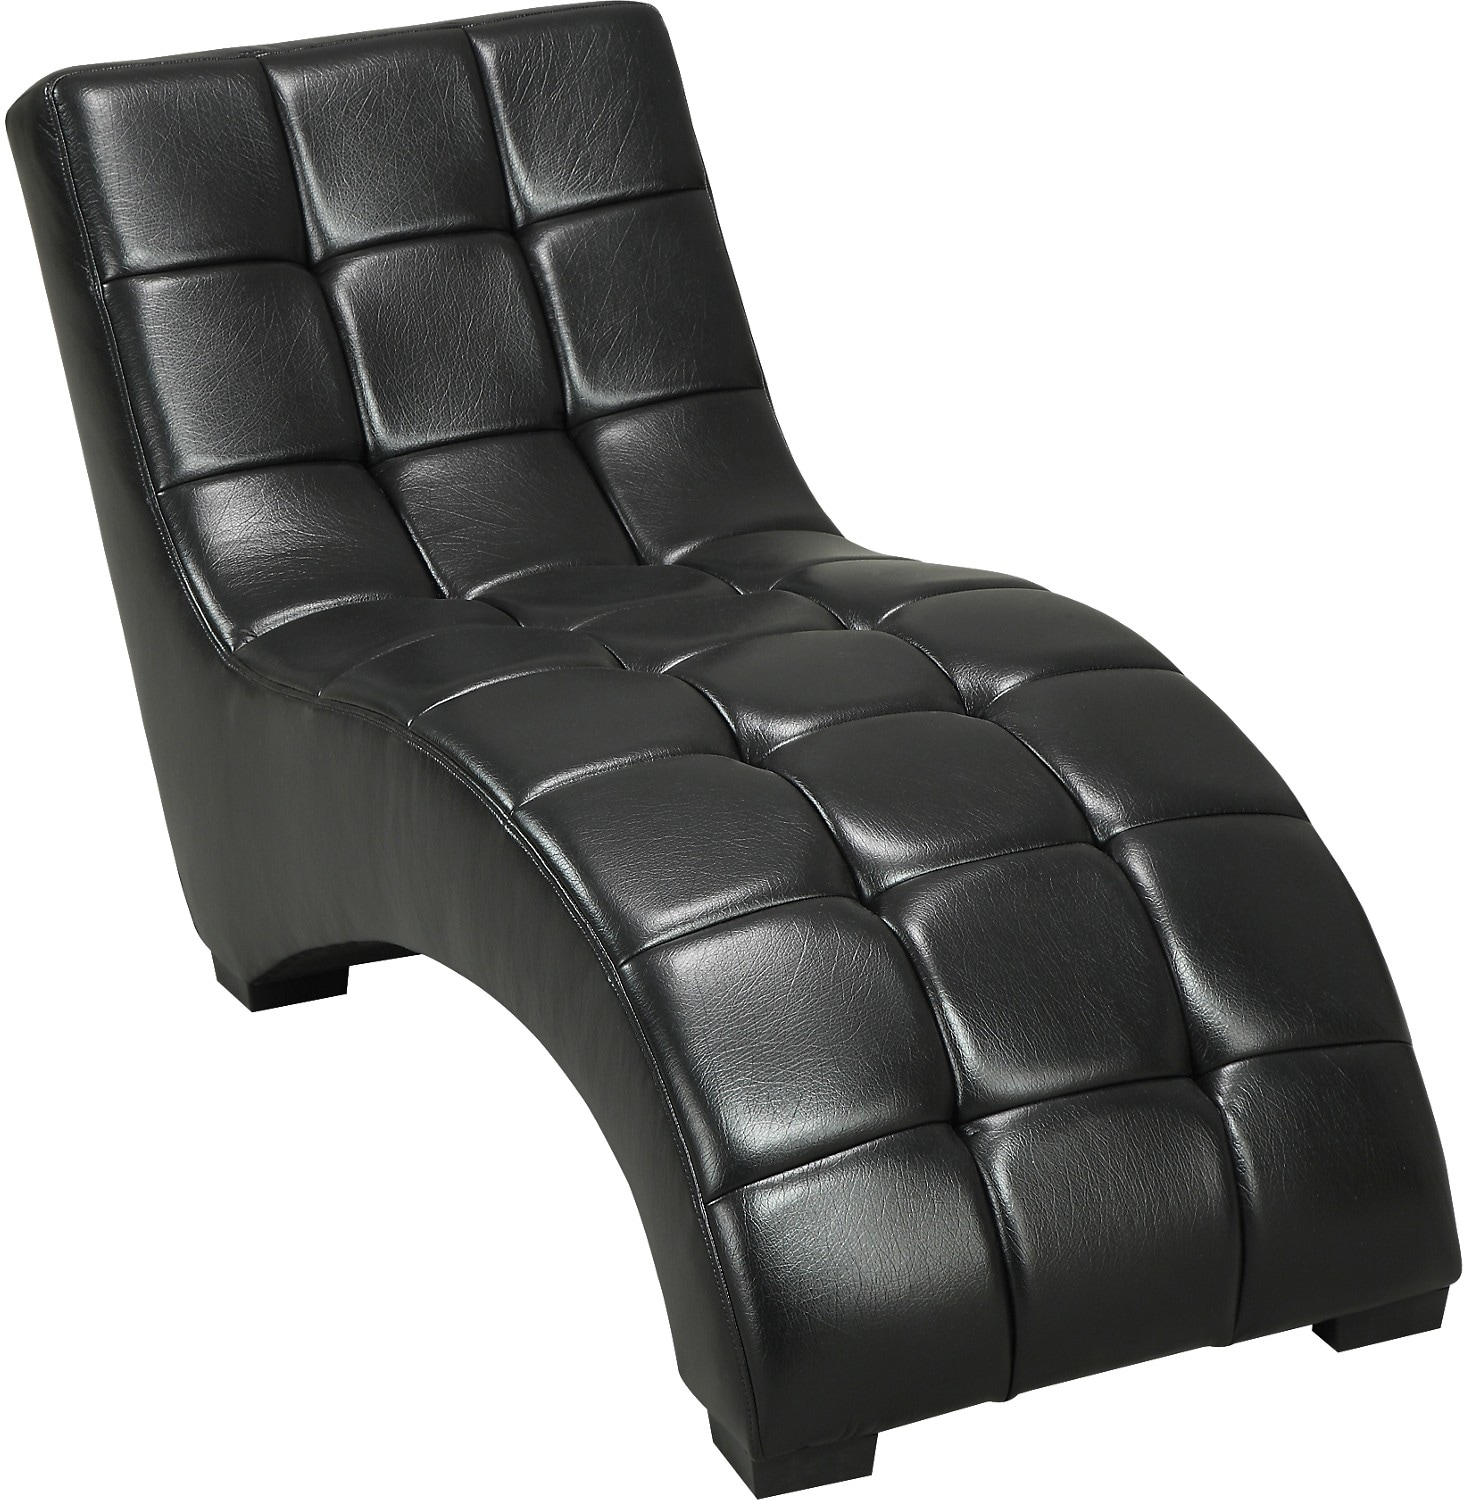 Living Room Furniture - Icon Curved Black Chaise